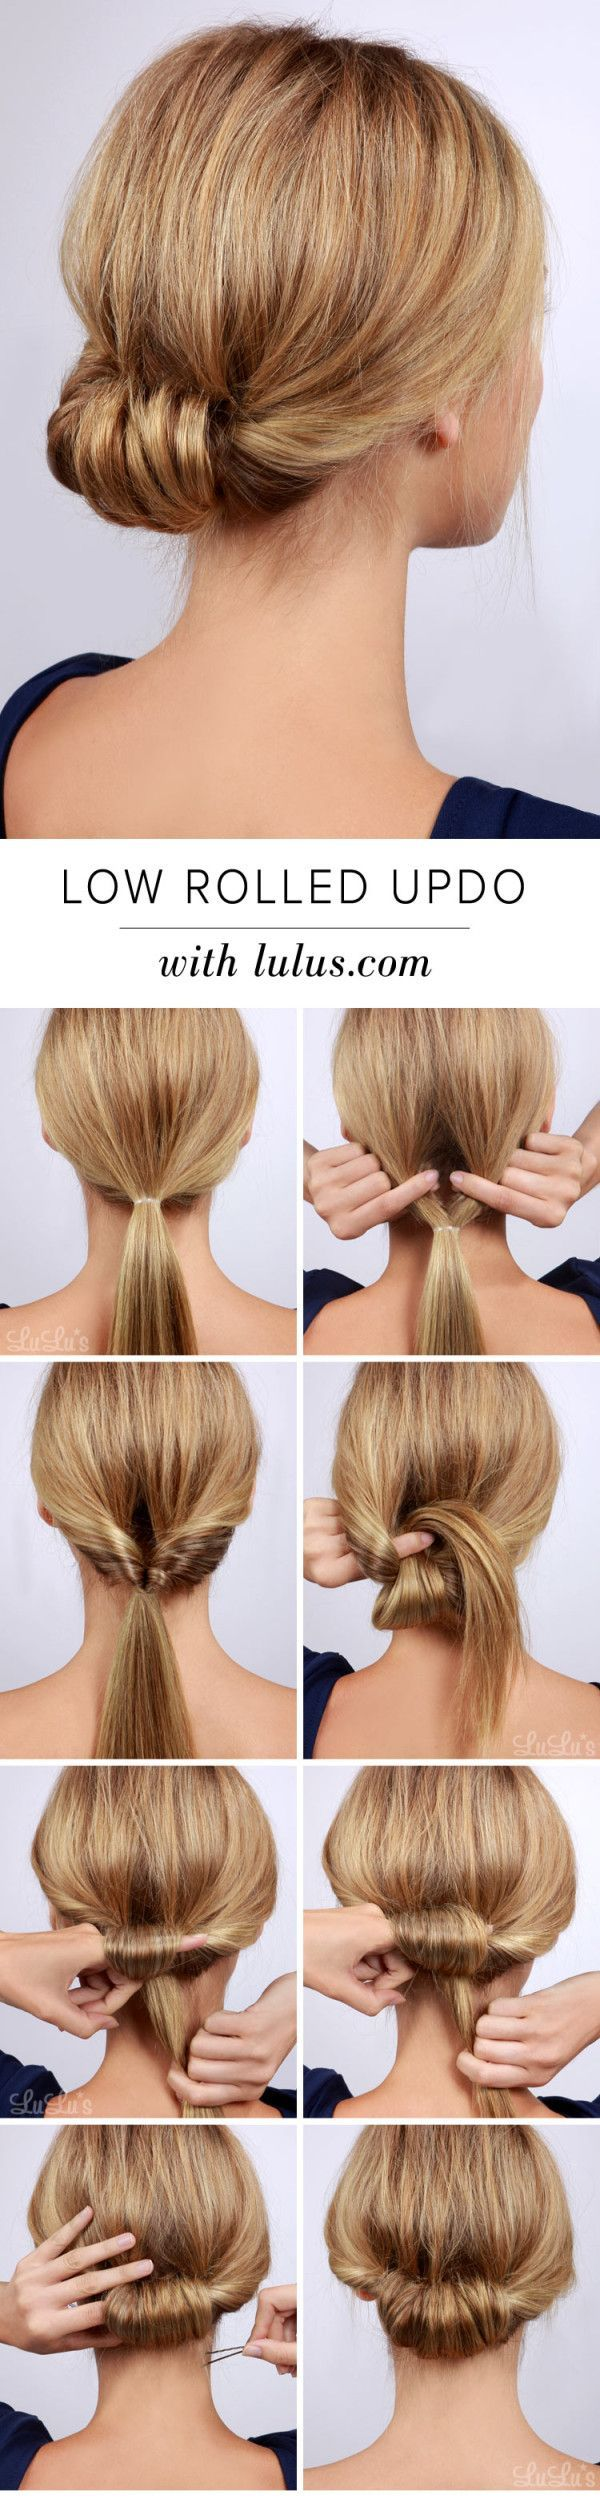 Cowgirlworthy ways to wear your hair up hairness pinterest